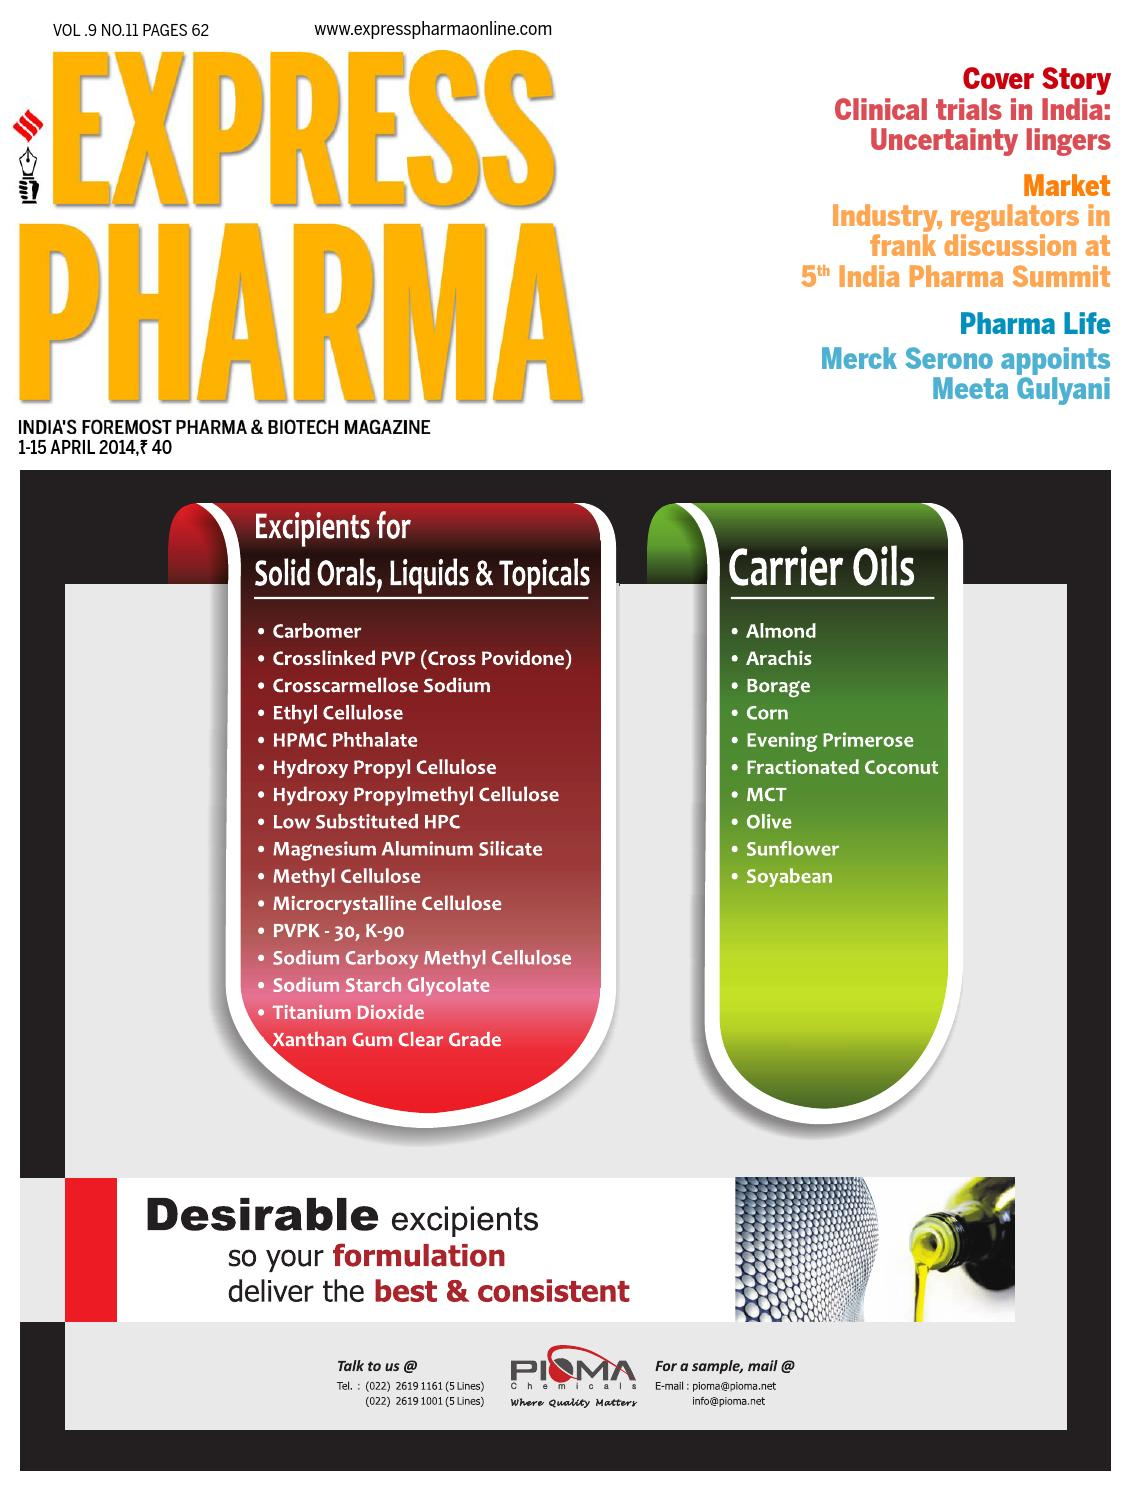 express pharma april 1 15 2014 by indian express   issuu